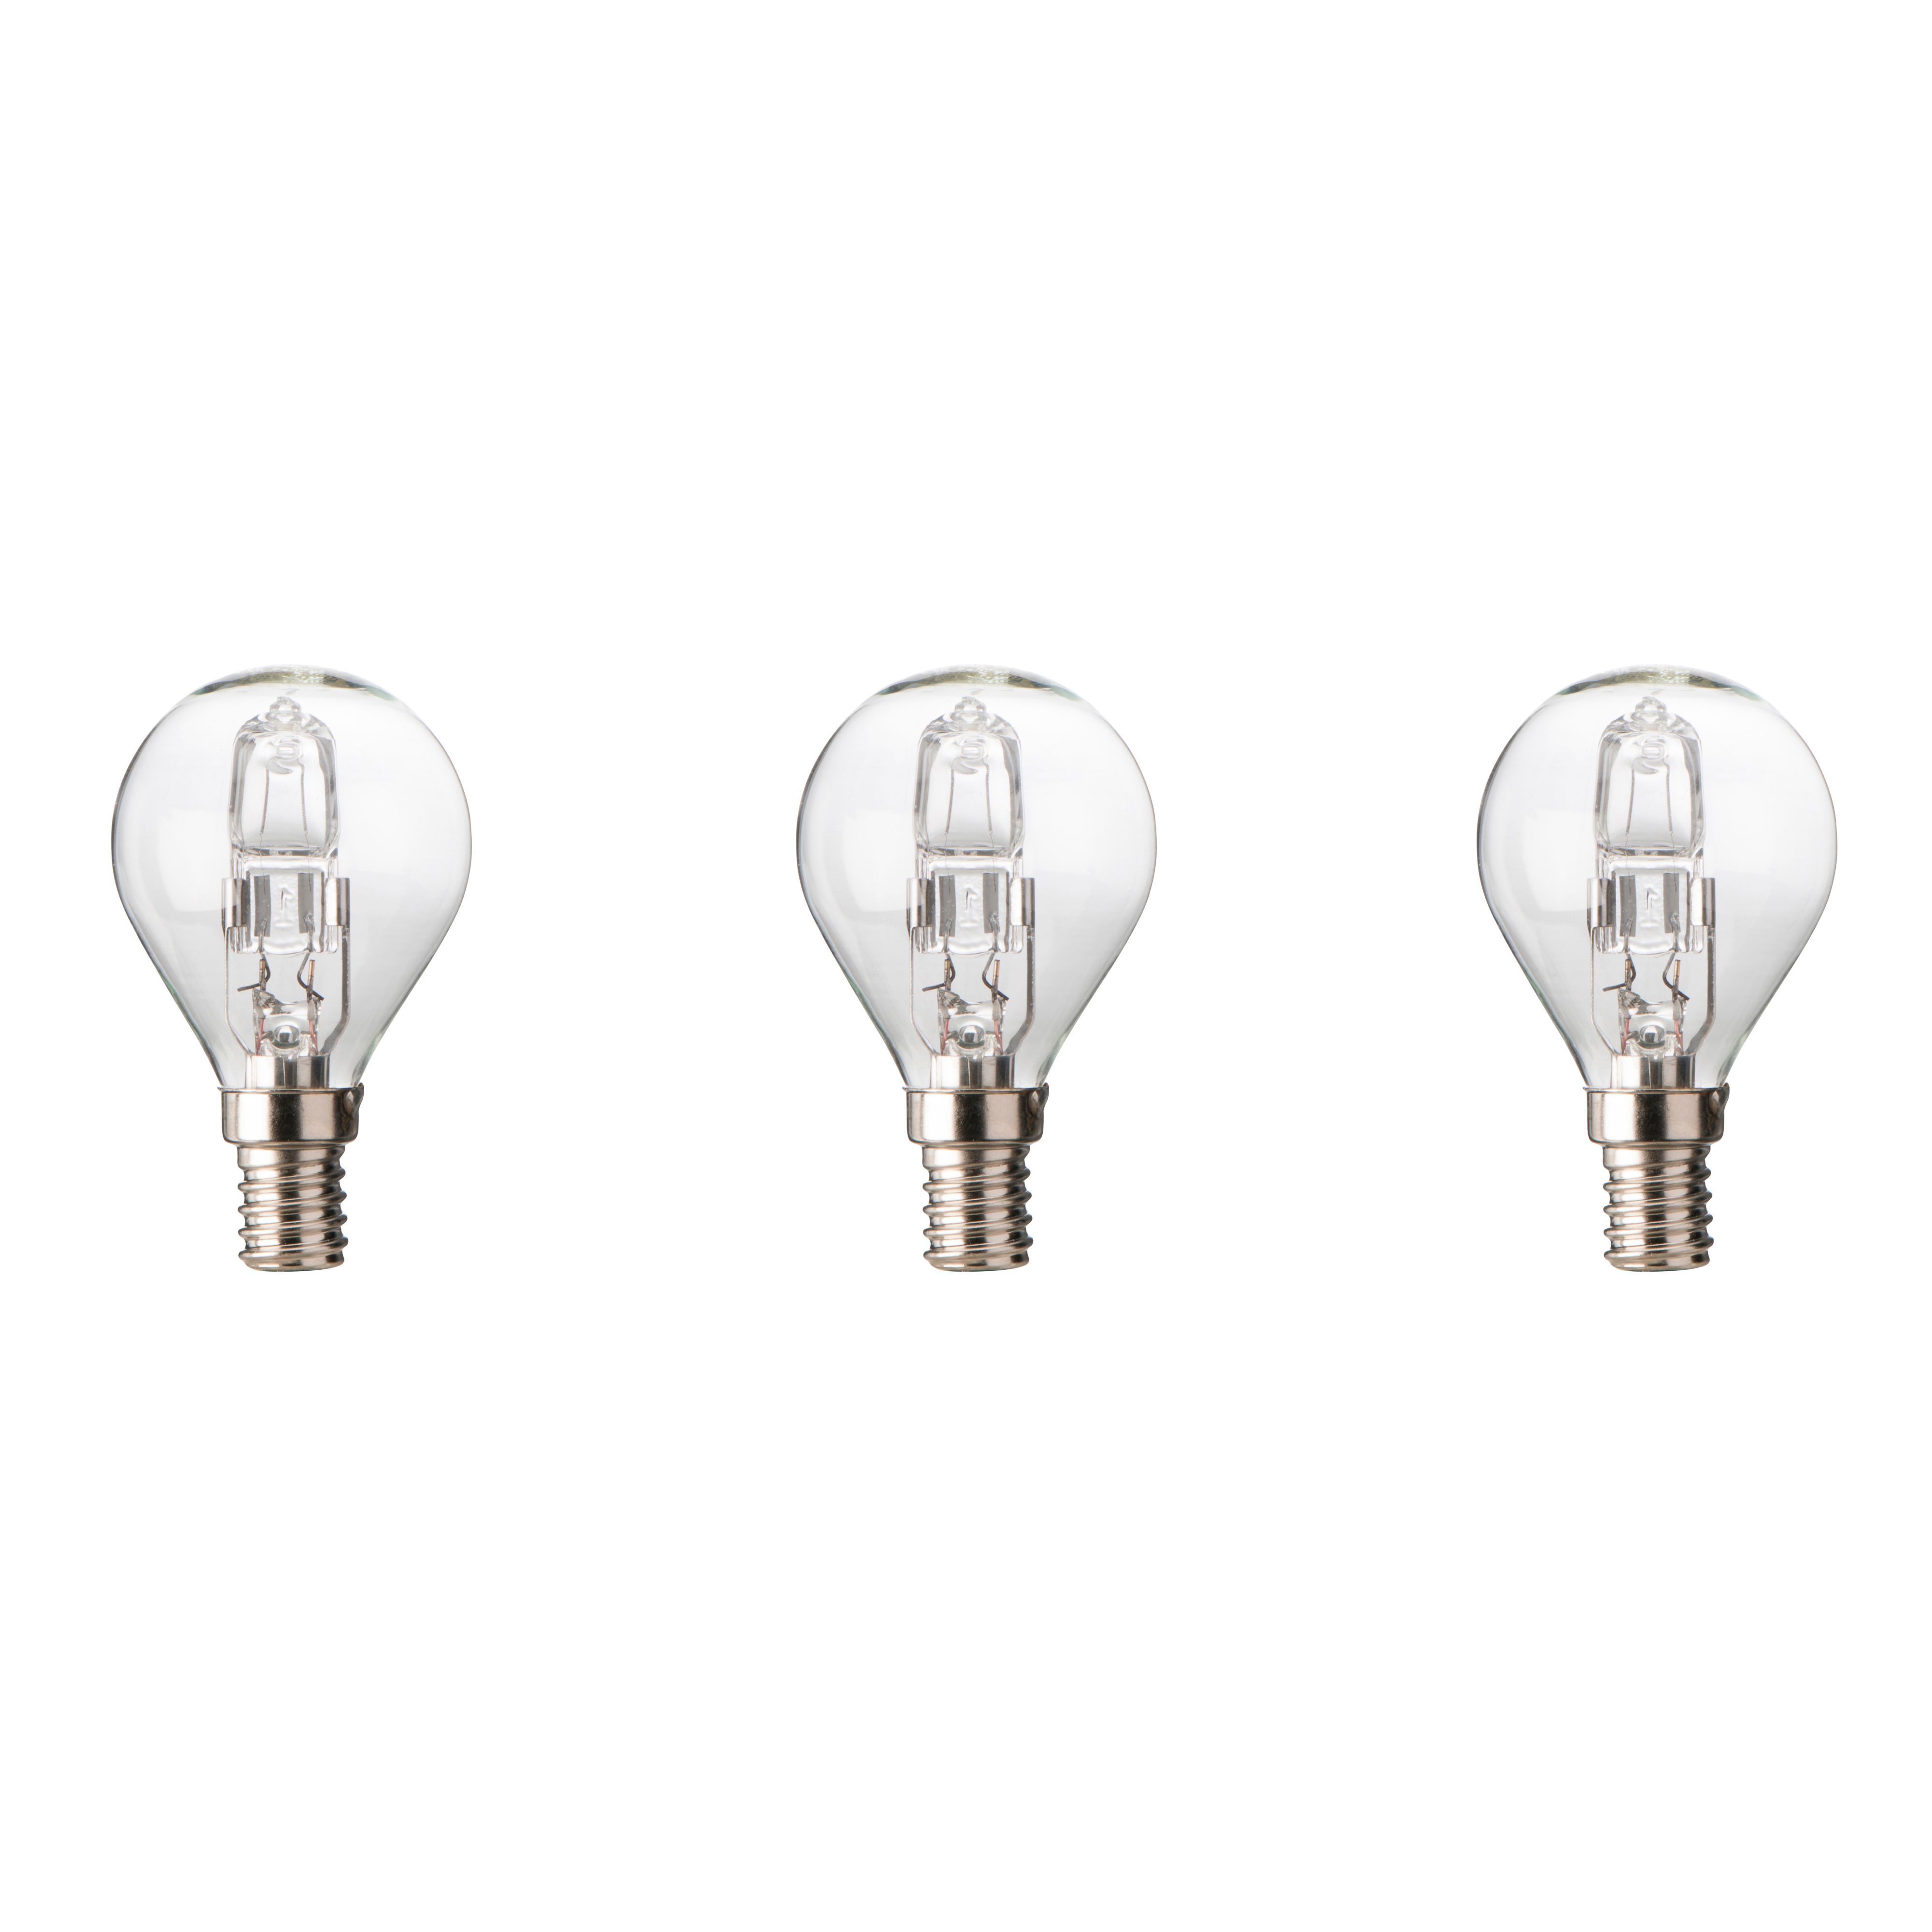 Diall E14 46w Halogen Dimmable Ball Light Bulb, Pack Of 3